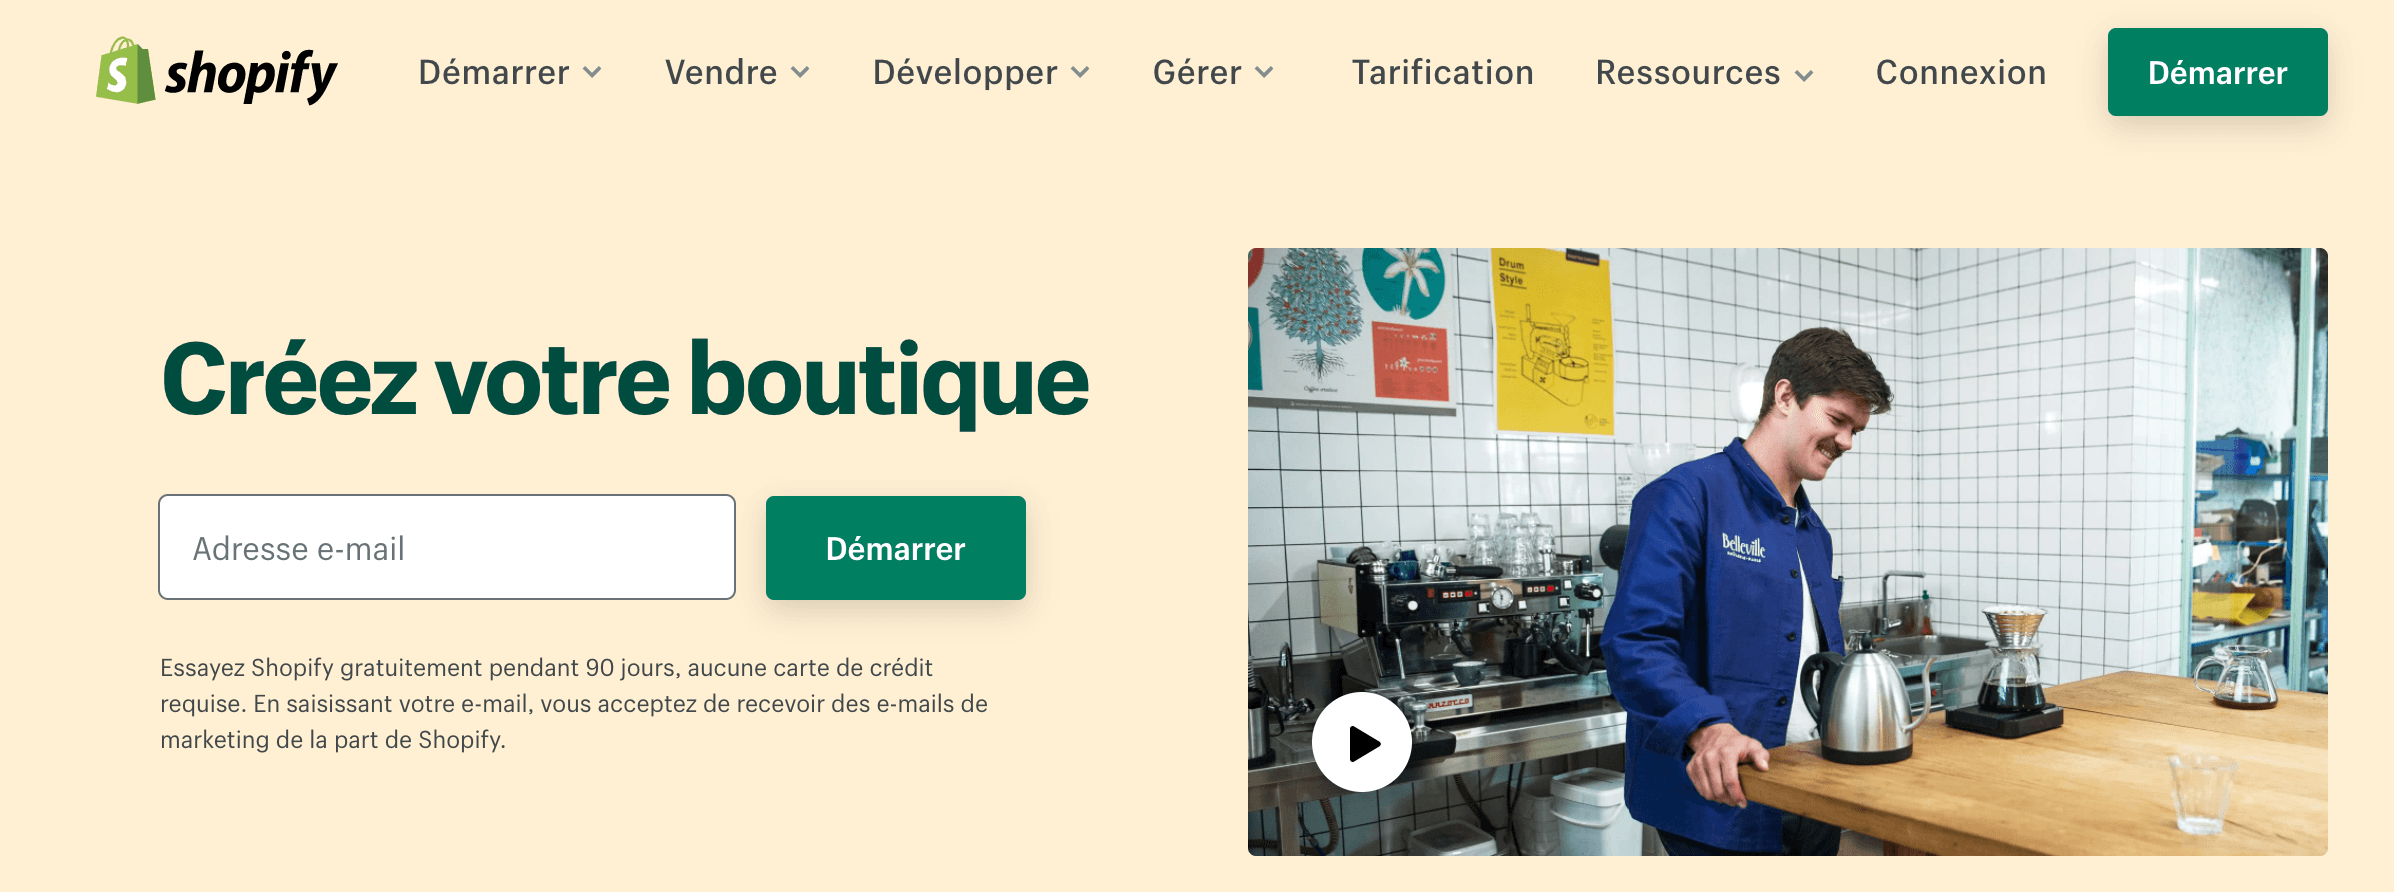 compte Shopify